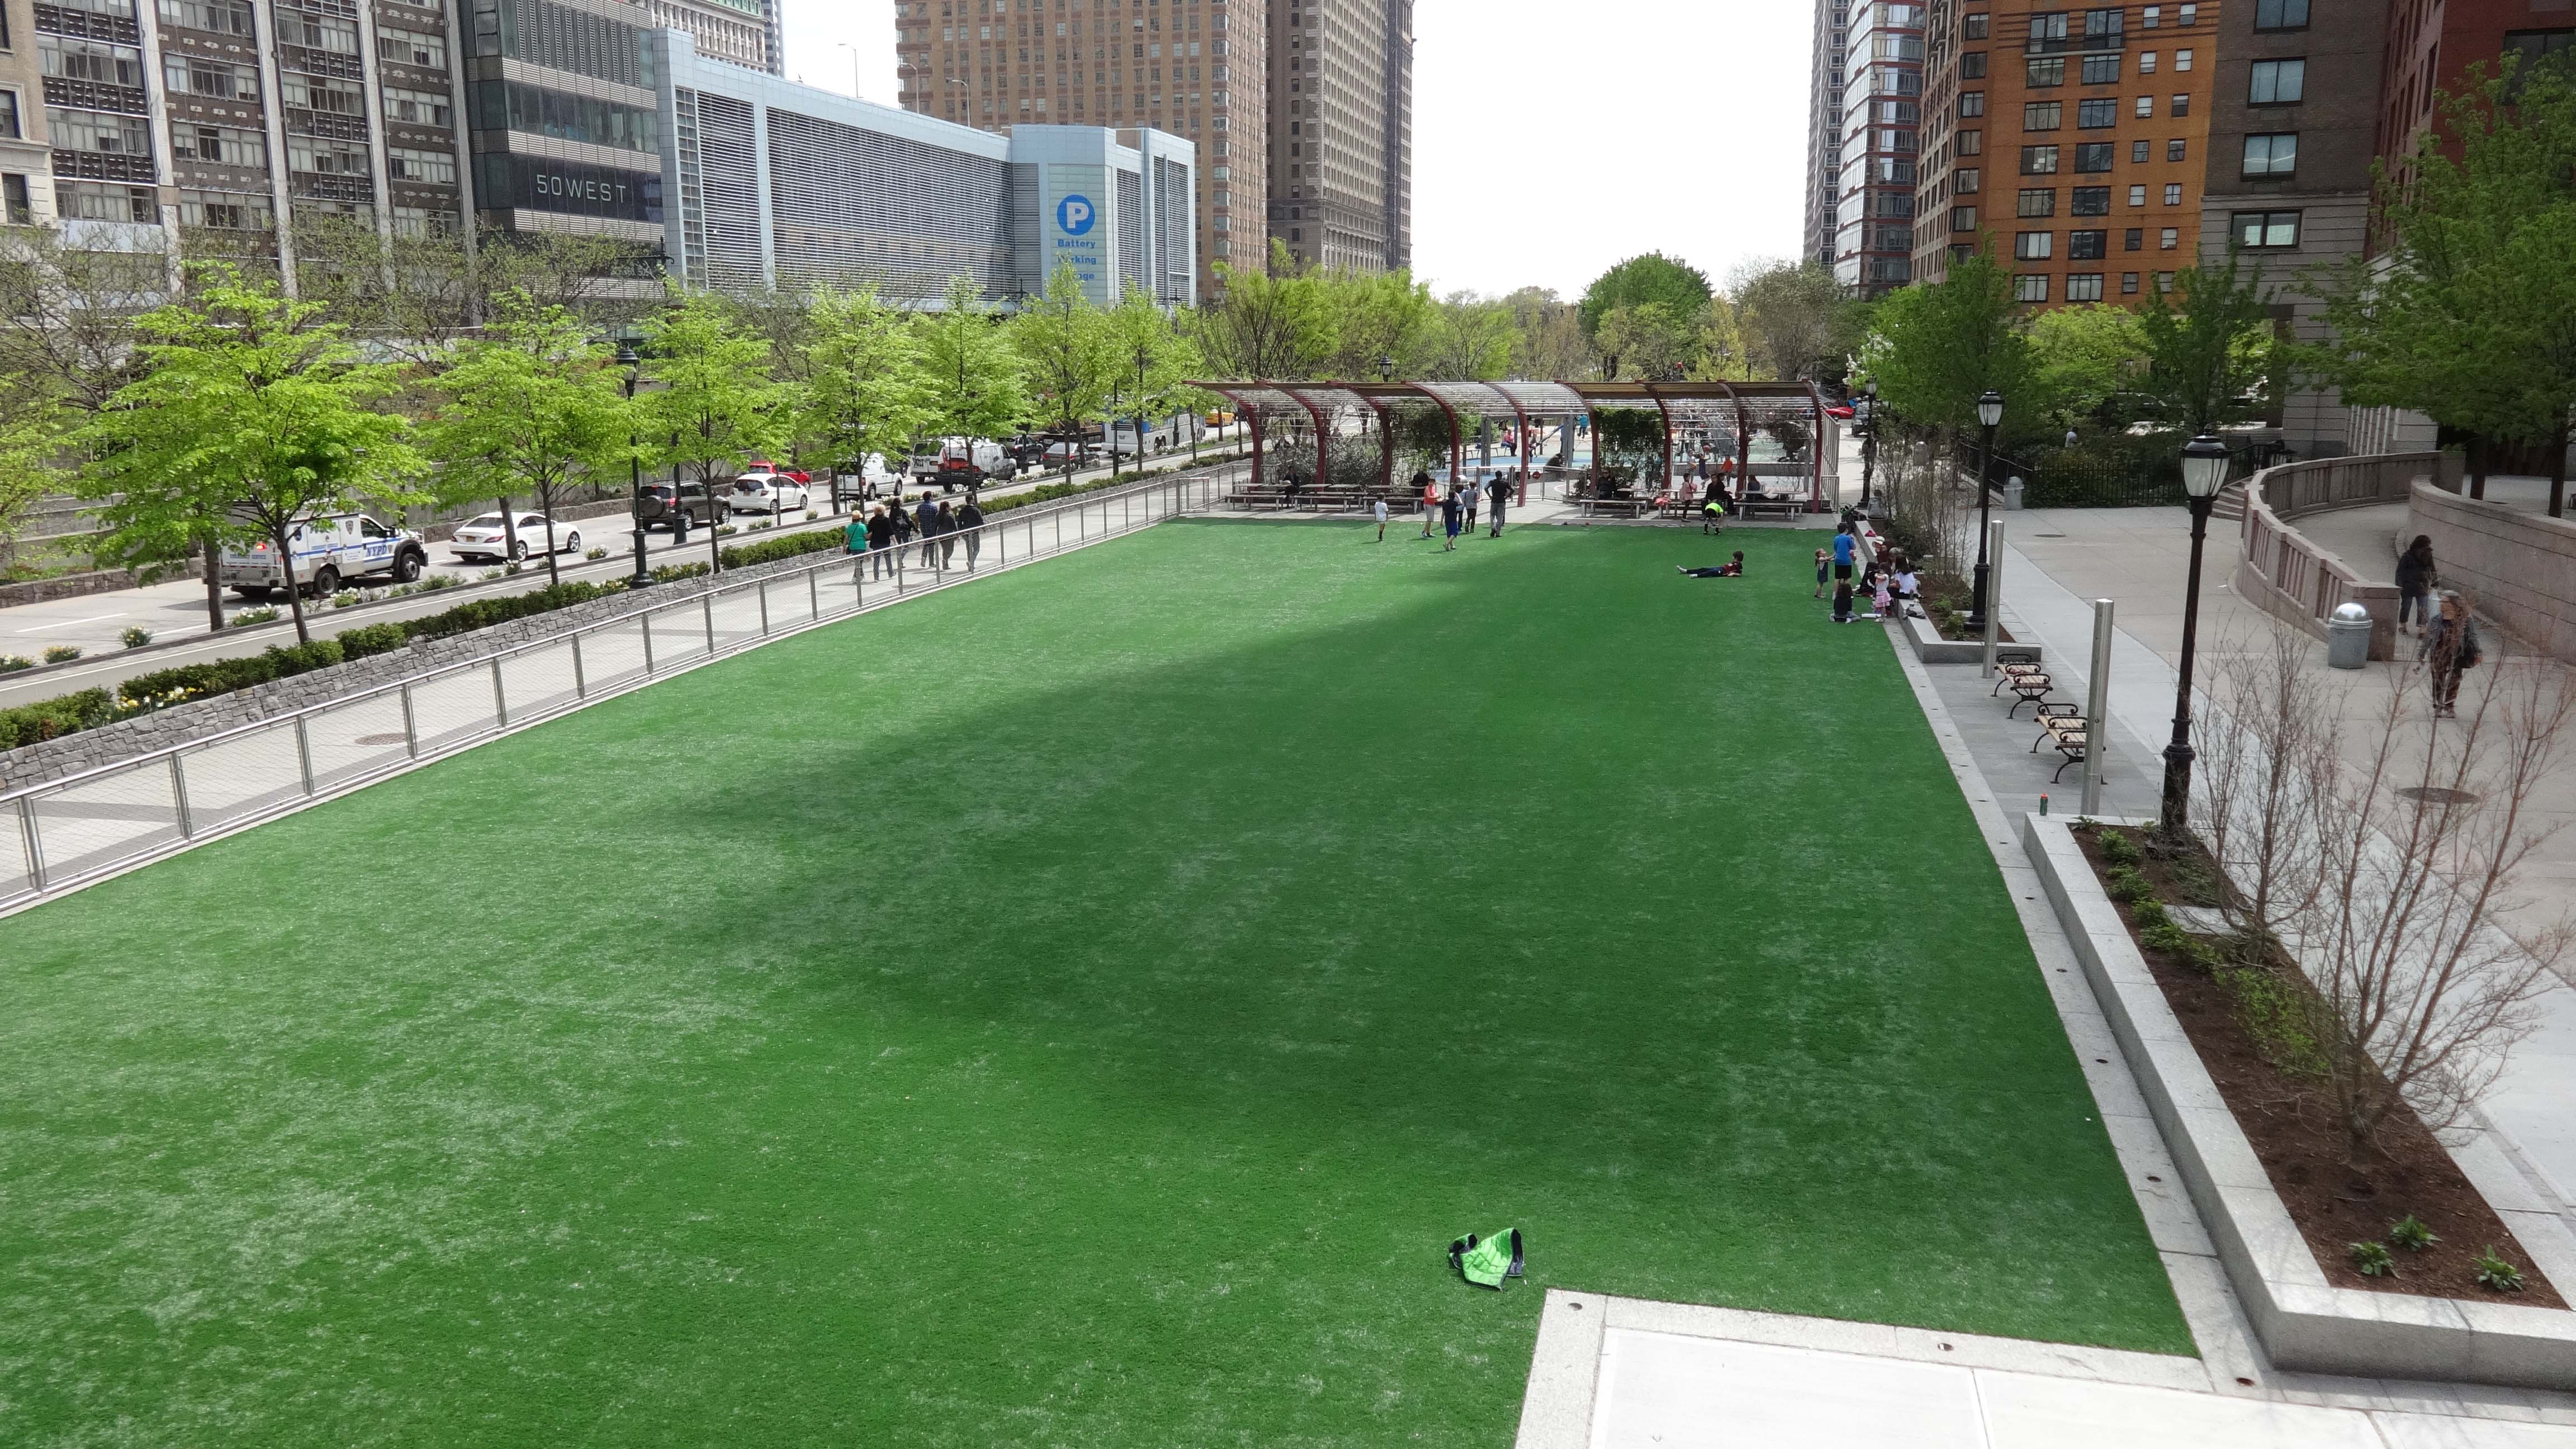 new west thames artificial turf field 4-25-2016